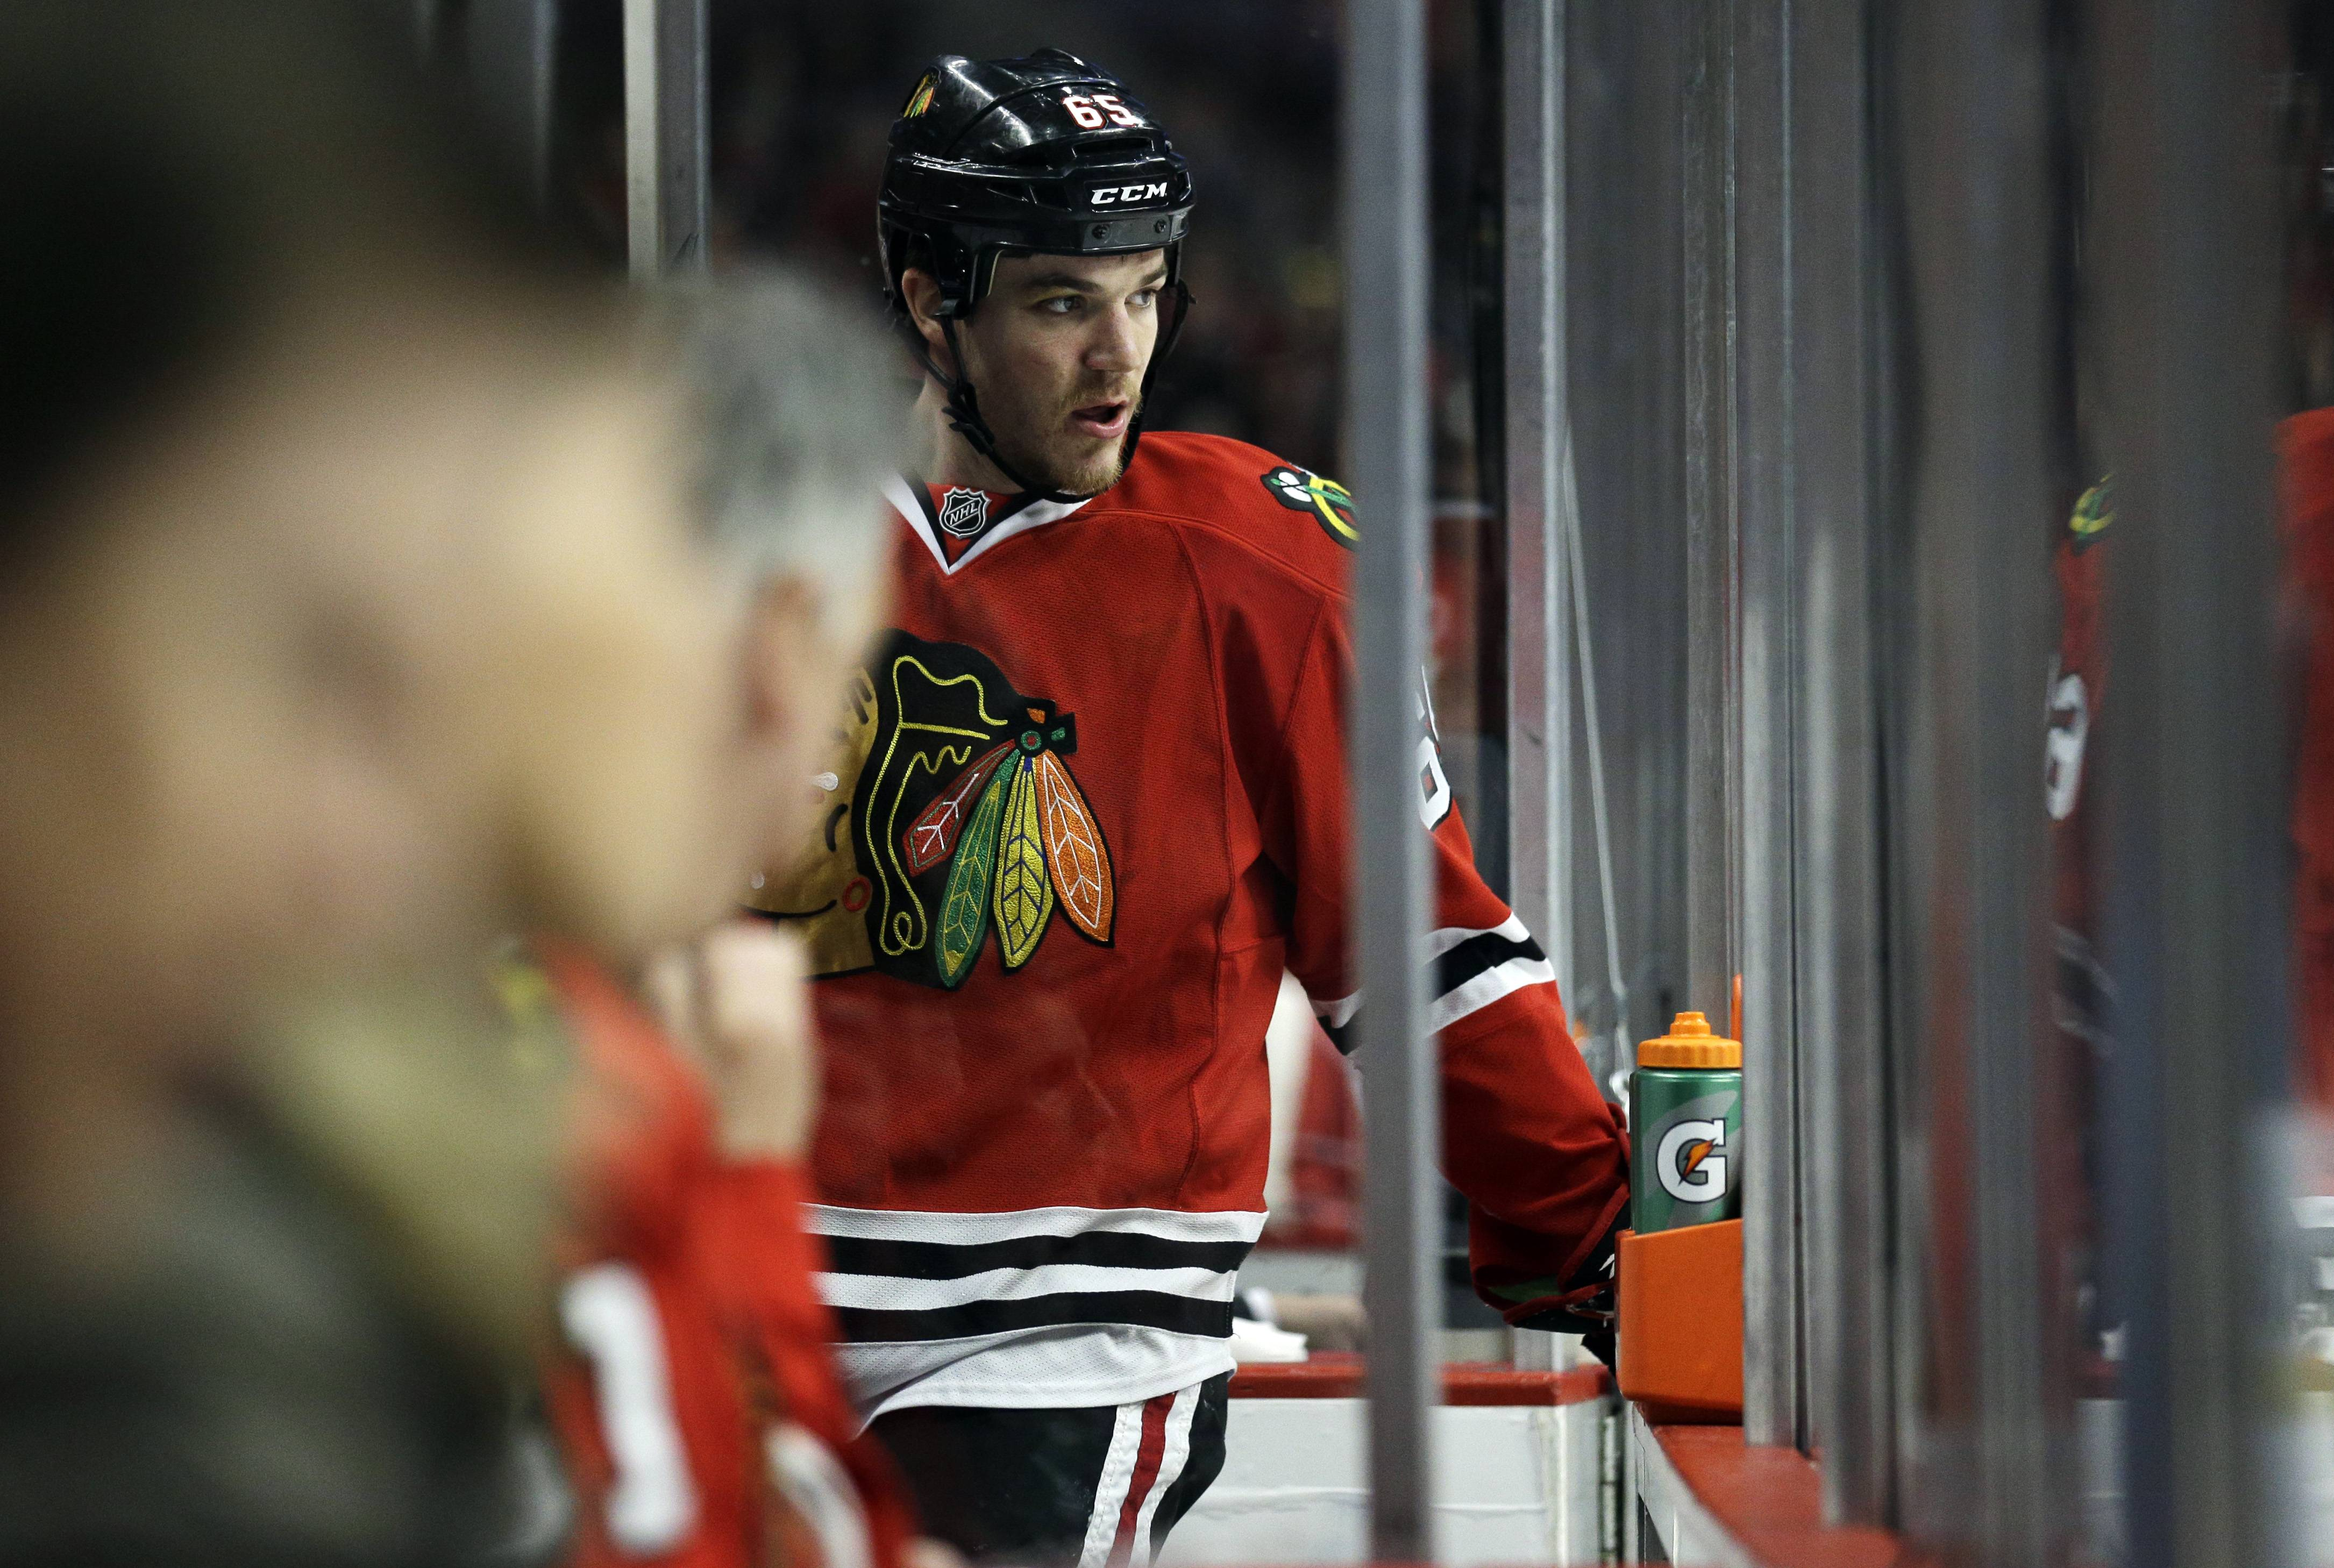 Chicago Blackhawks' Andrew Shaw (65) watches his teammates during the first period  in Game 1 of an NHL hockey second-round playoff series against the Minnesota Wild in Chicago, Friday, May 2, 2014.